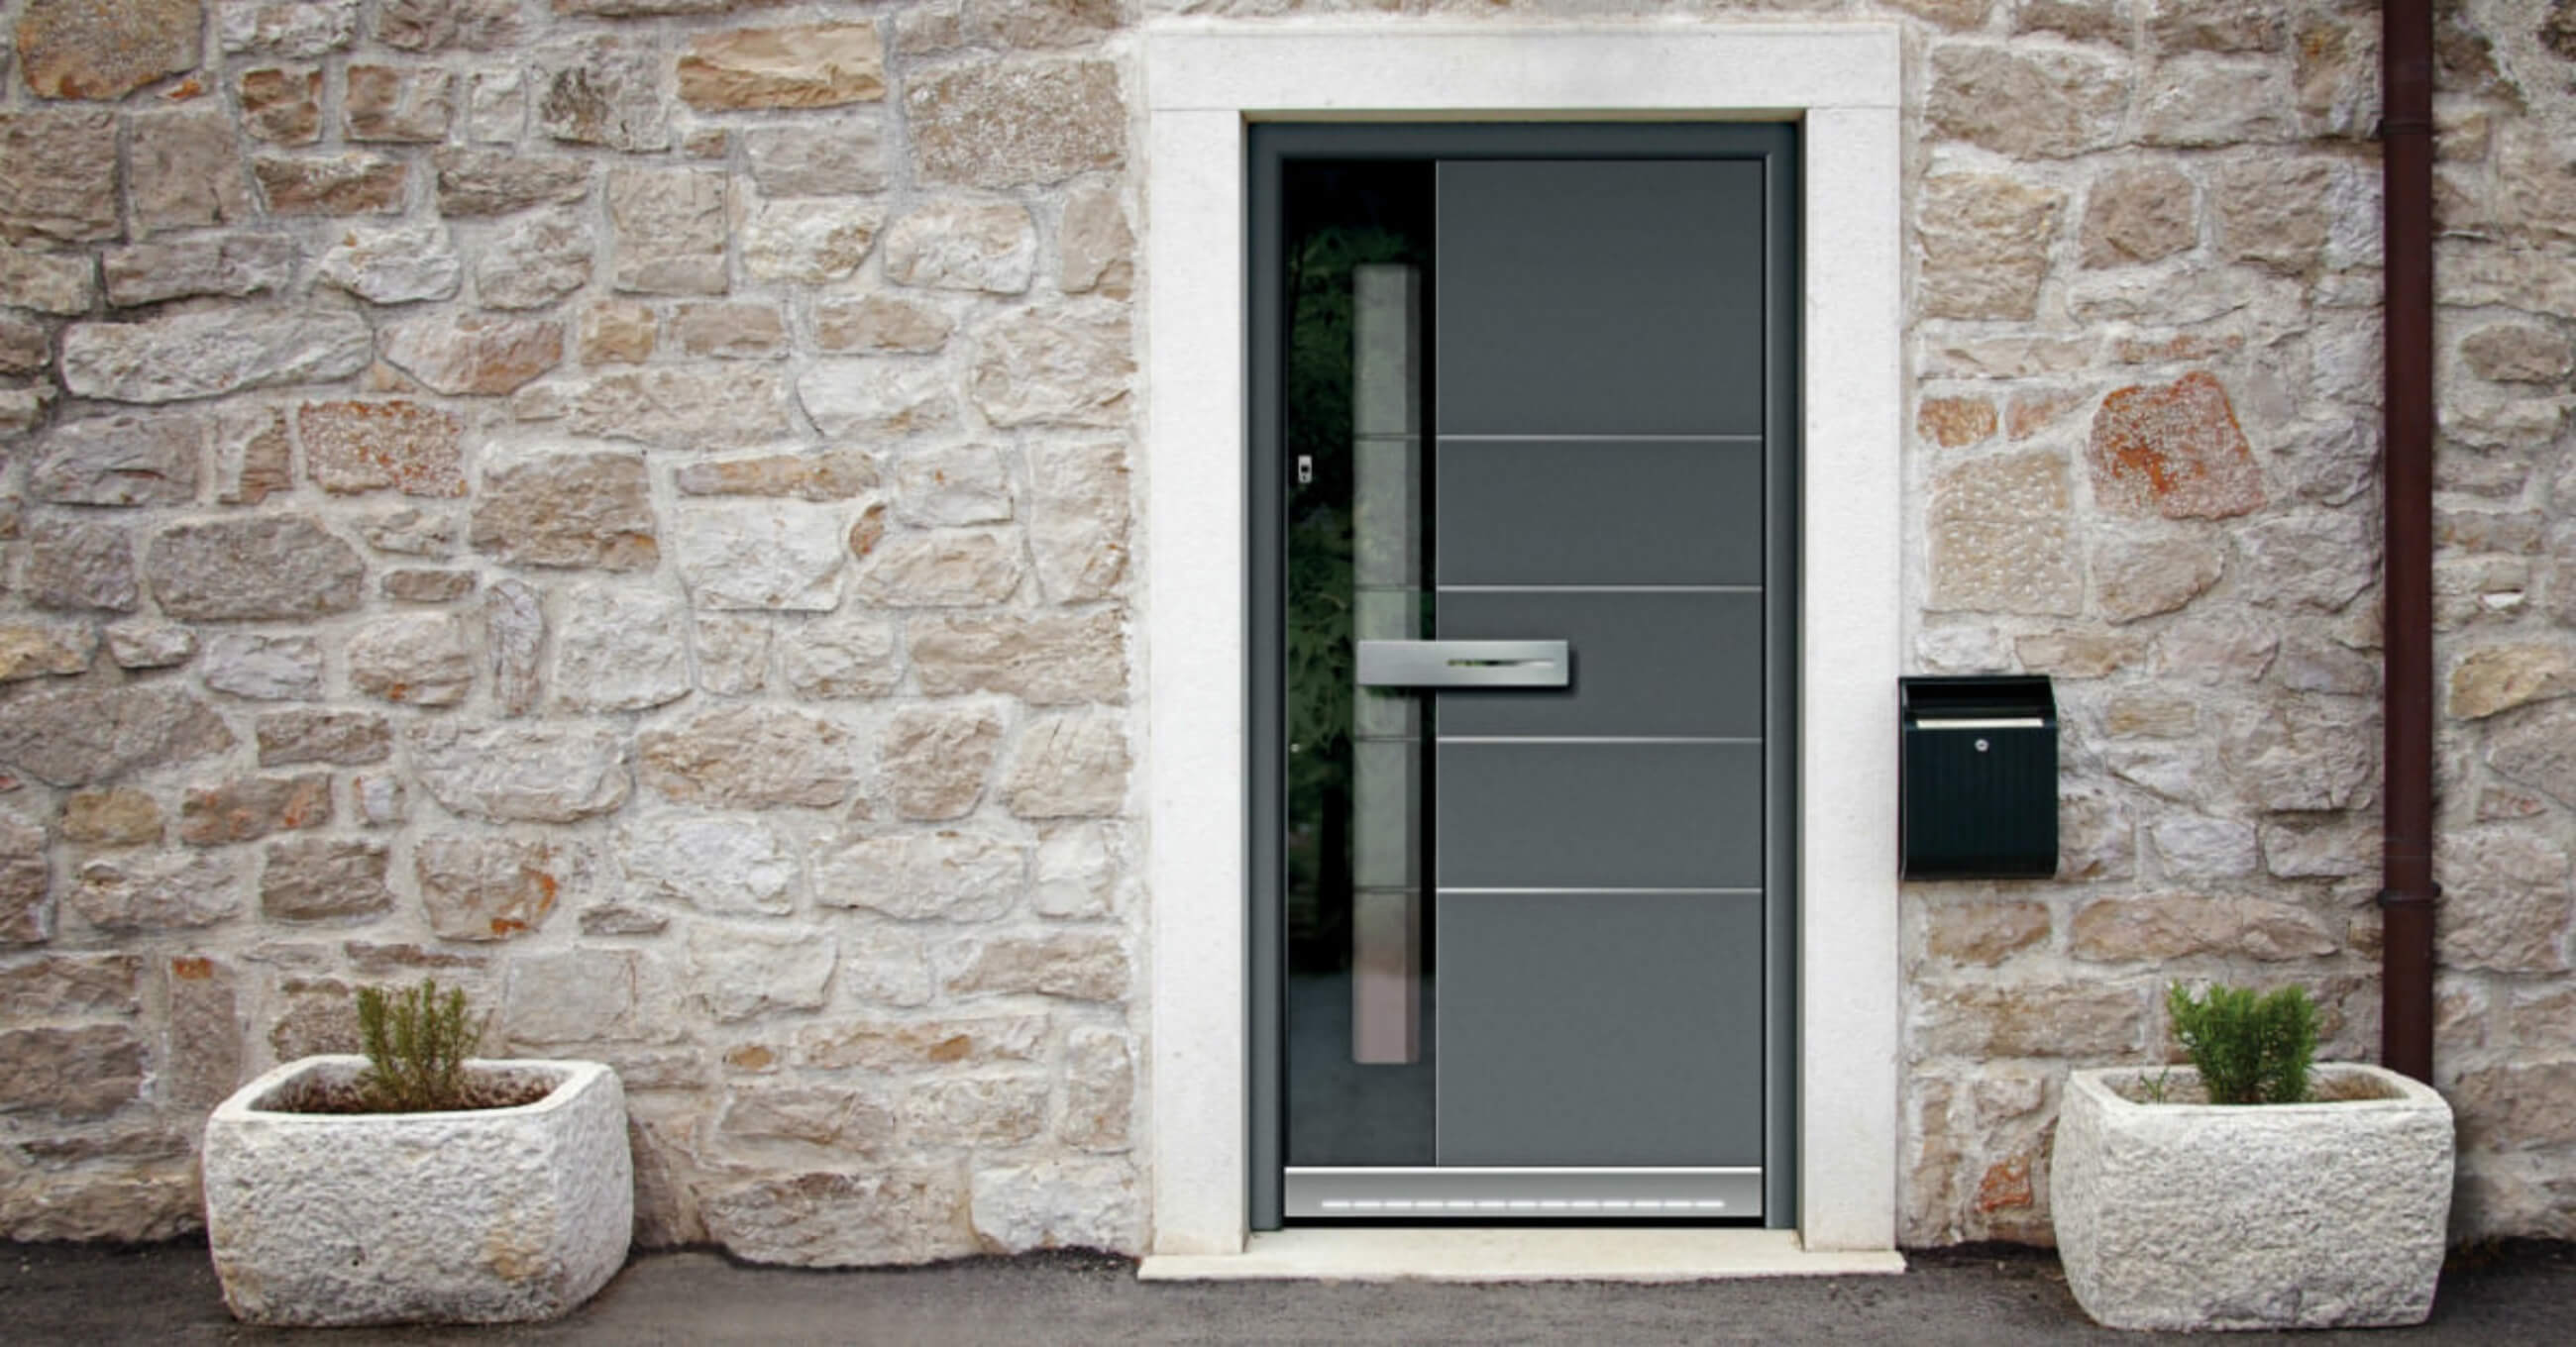 Reasons why you should invest in front doors | PIRNAR